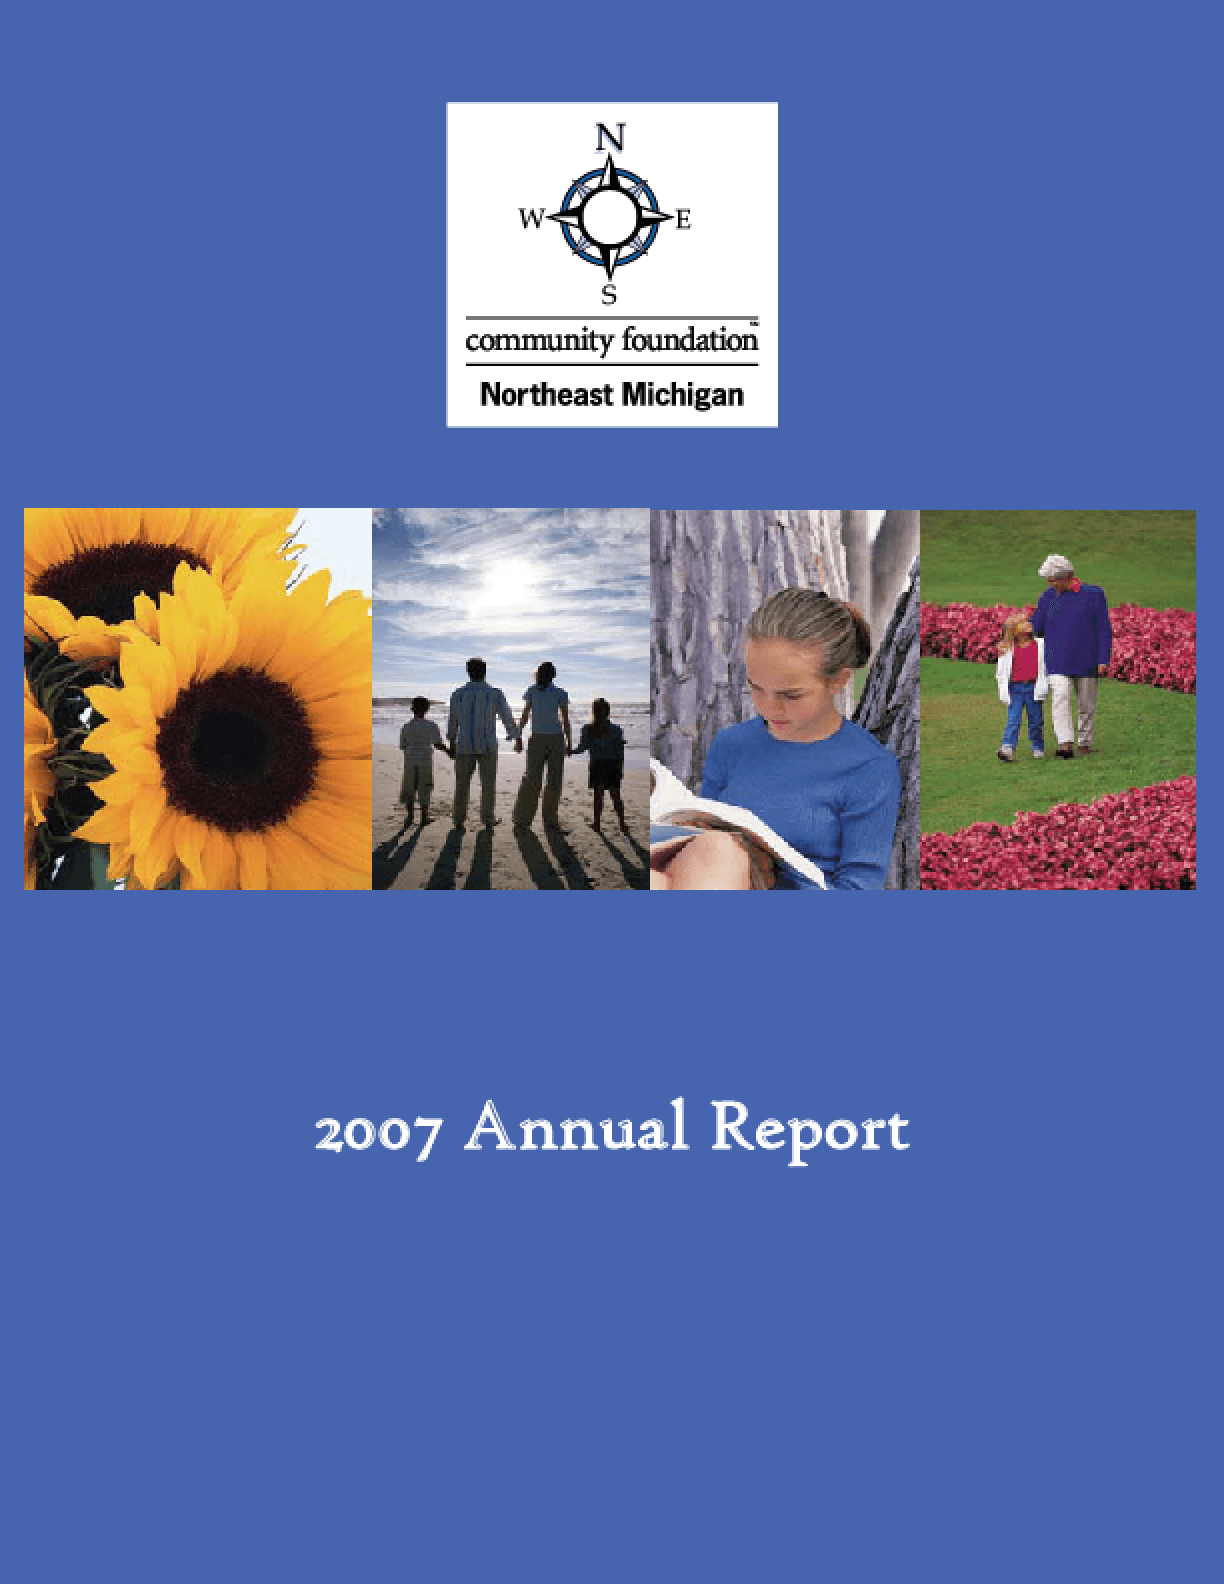 Community Foundation for Northeast Michigan - 2007 Annual Report